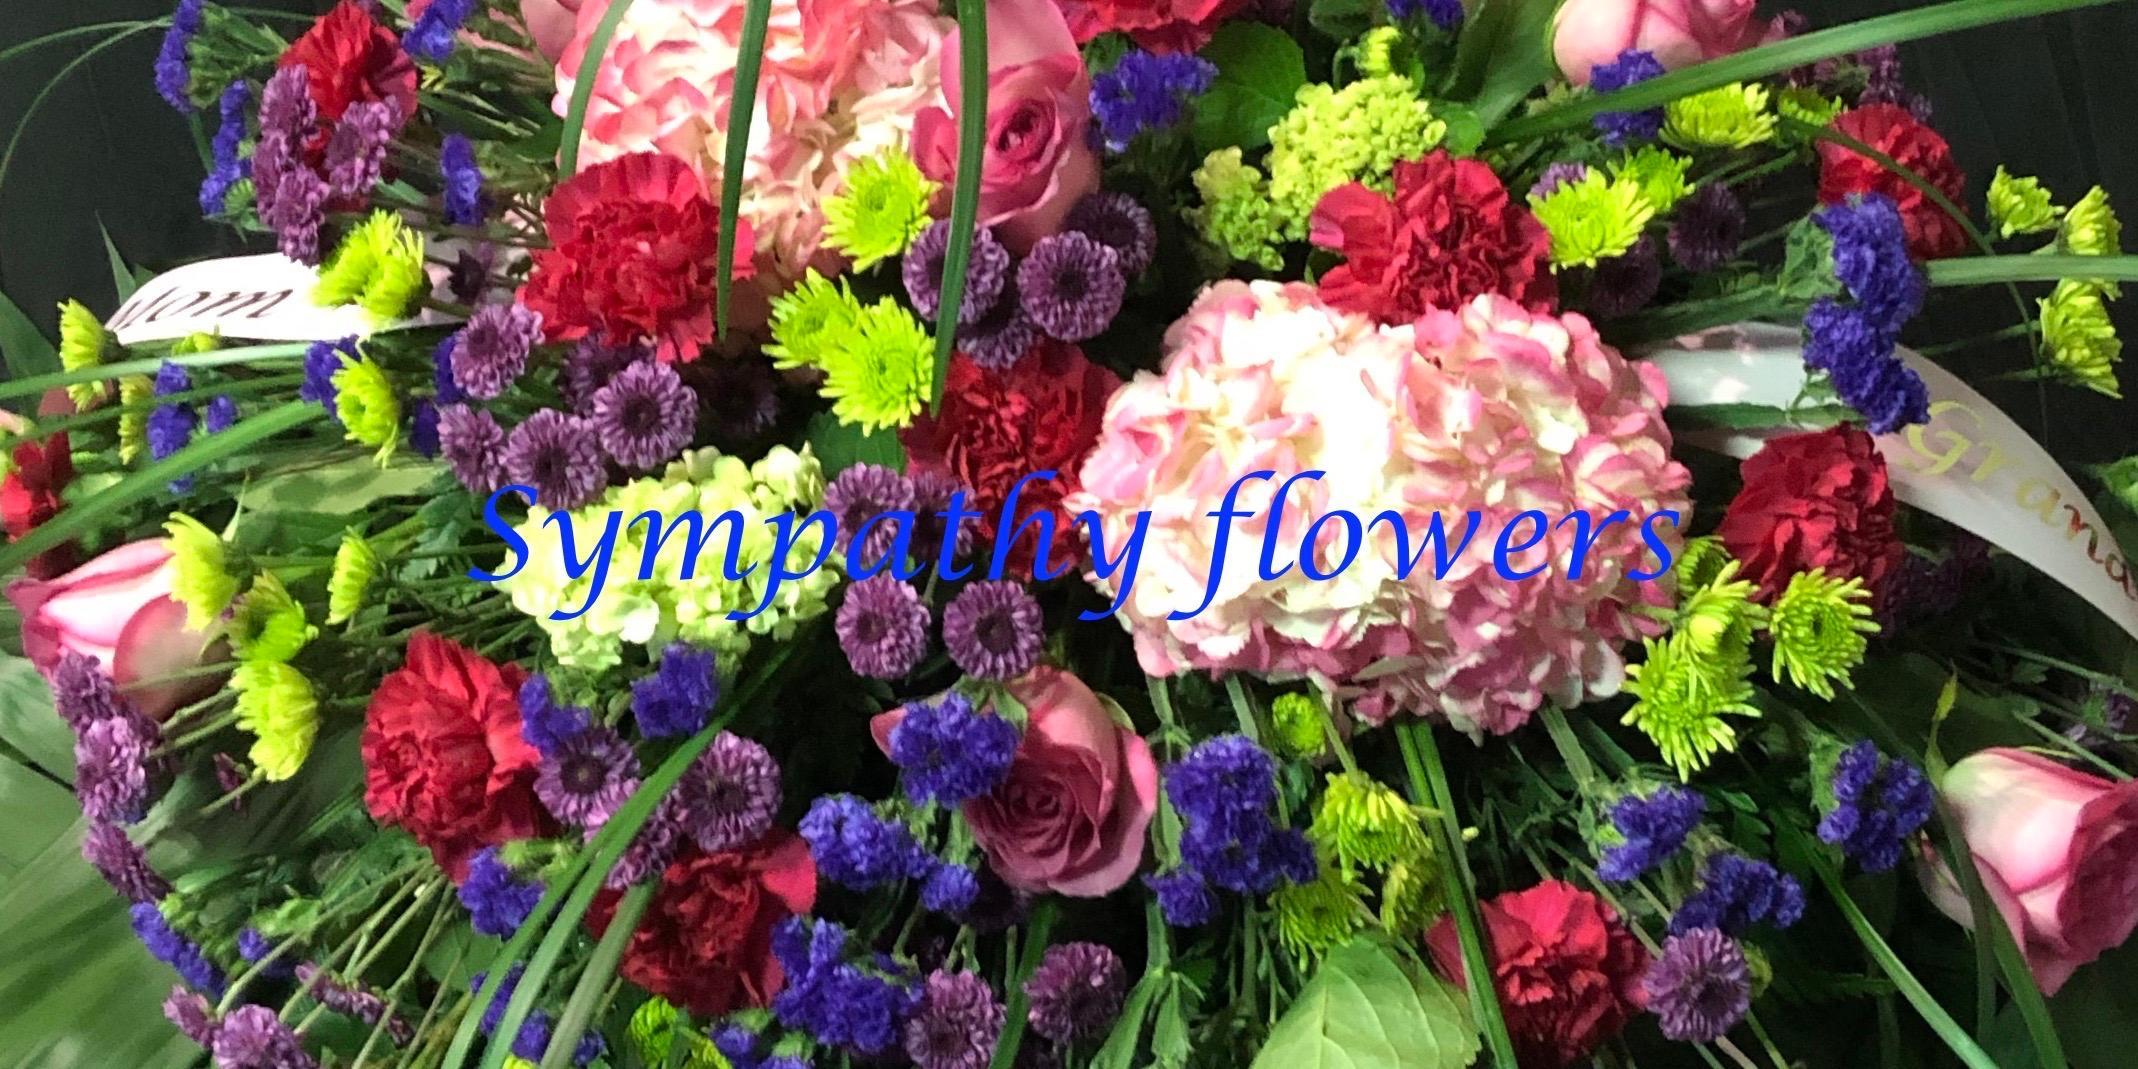 Springfield Florist Flower Delivery By Fifth Street Flower Shop